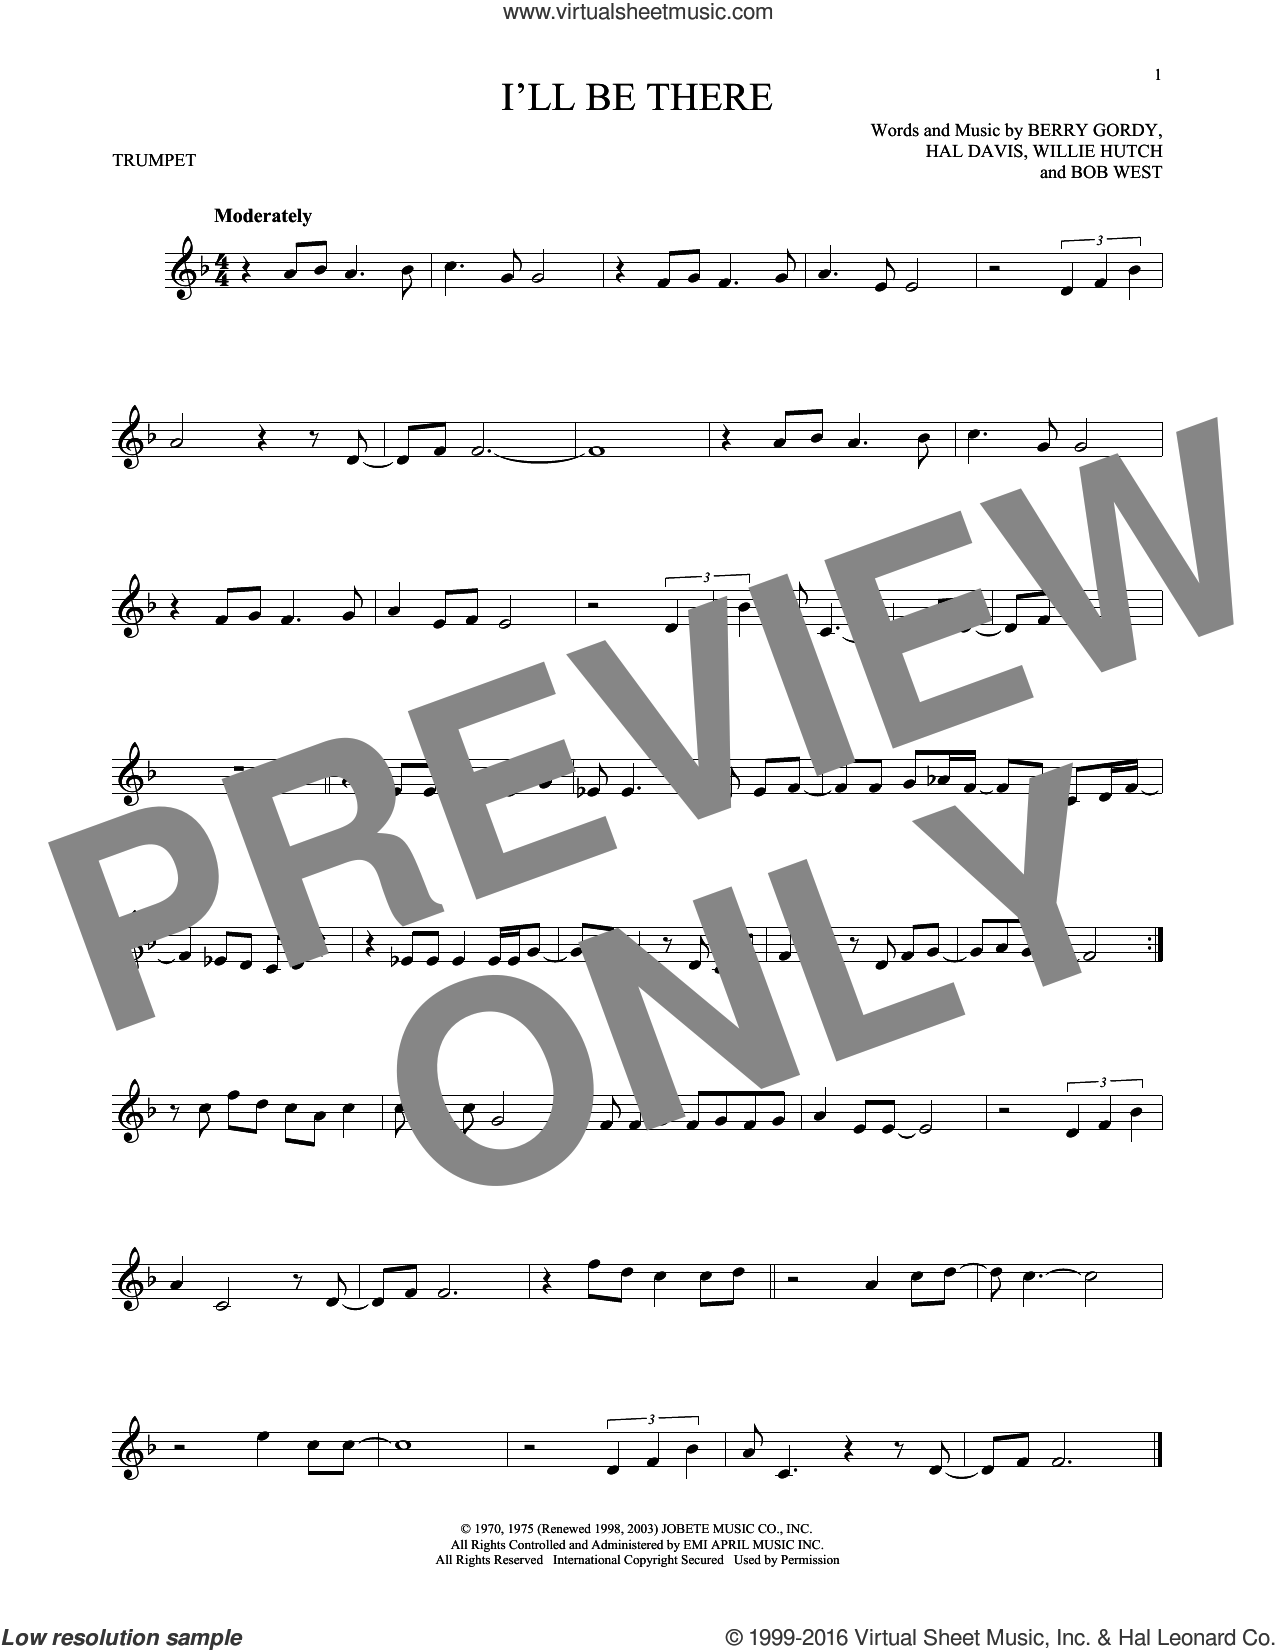 I'll Be There sheet music for trumpet solo by The Jackson 5, Berry Gordy Jr., Bob West, Hal Davis and Willie Hutch, intermediate skill level